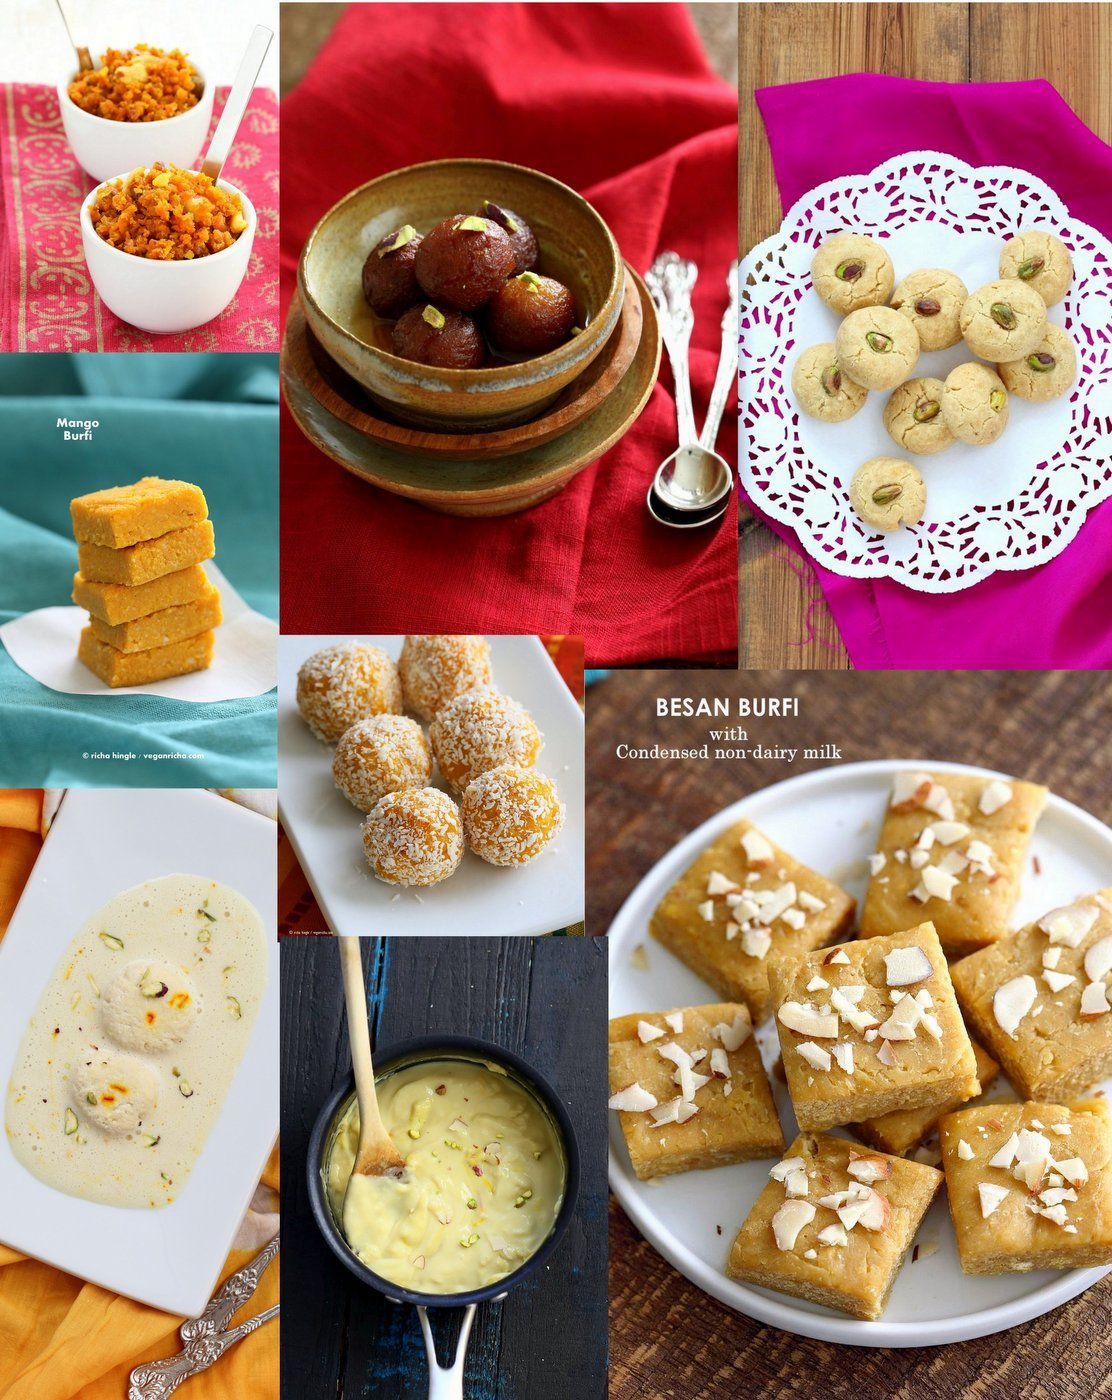 Vegan India Sweets and Desserts for Diwali | VeganRicha.com #veganricha #dairyfree #veganindian #glutenfree